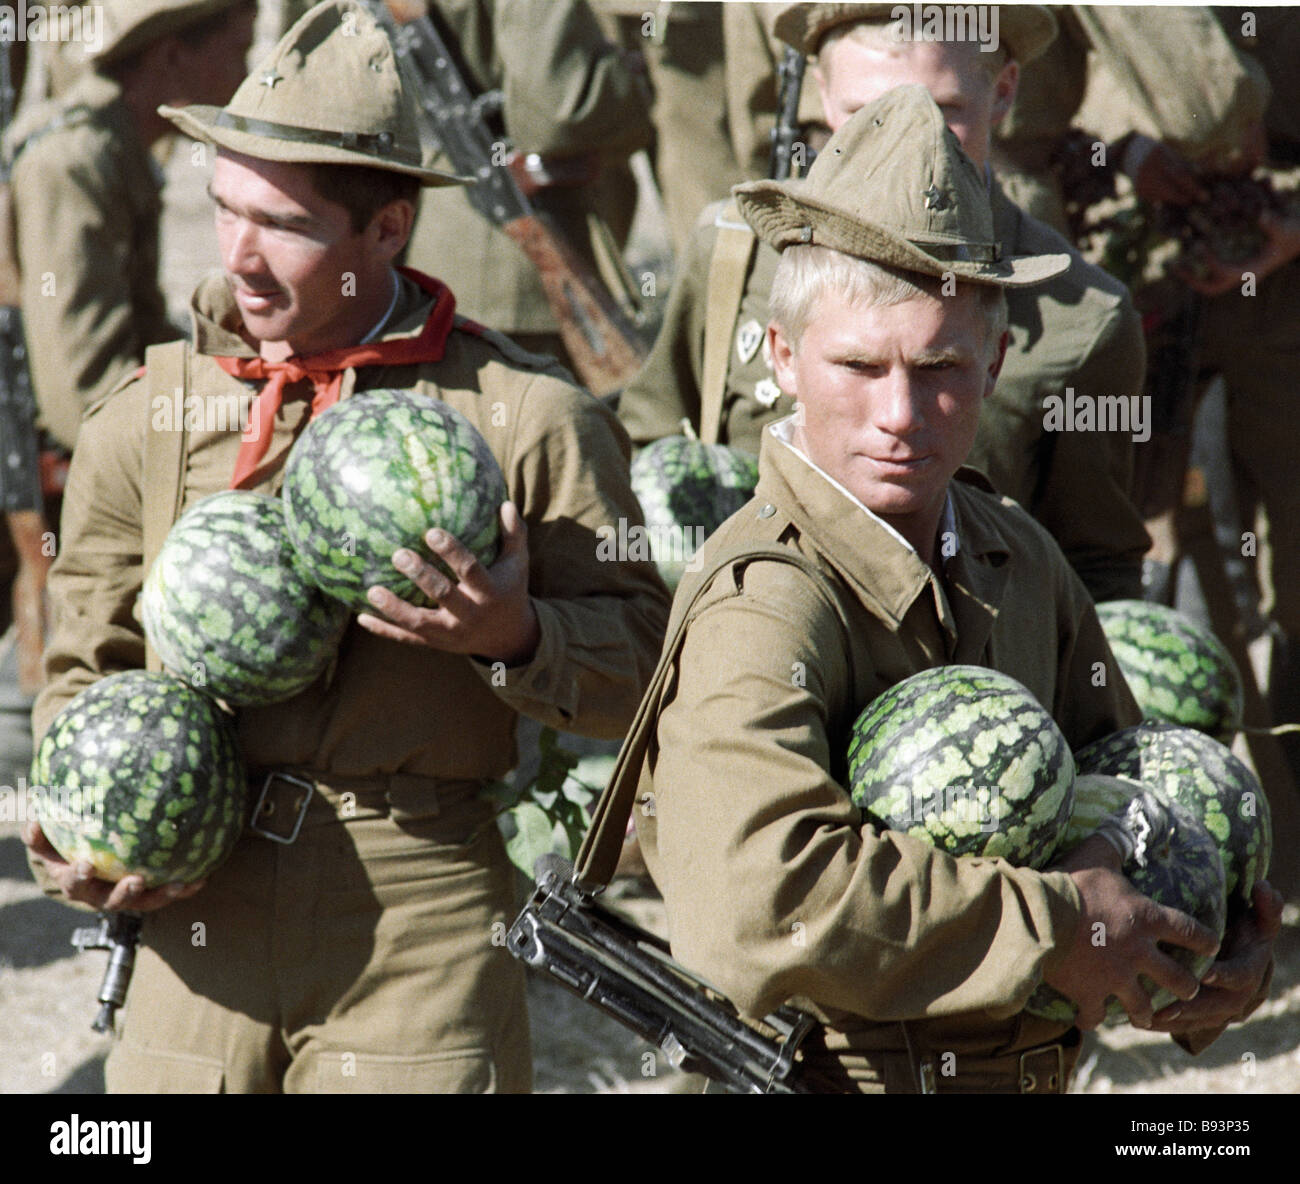 Soviet Afghanistan war - Page 6 Soviet-troops-pulled-out-from-afghanistan-with-watermelons-given-them-B93P35